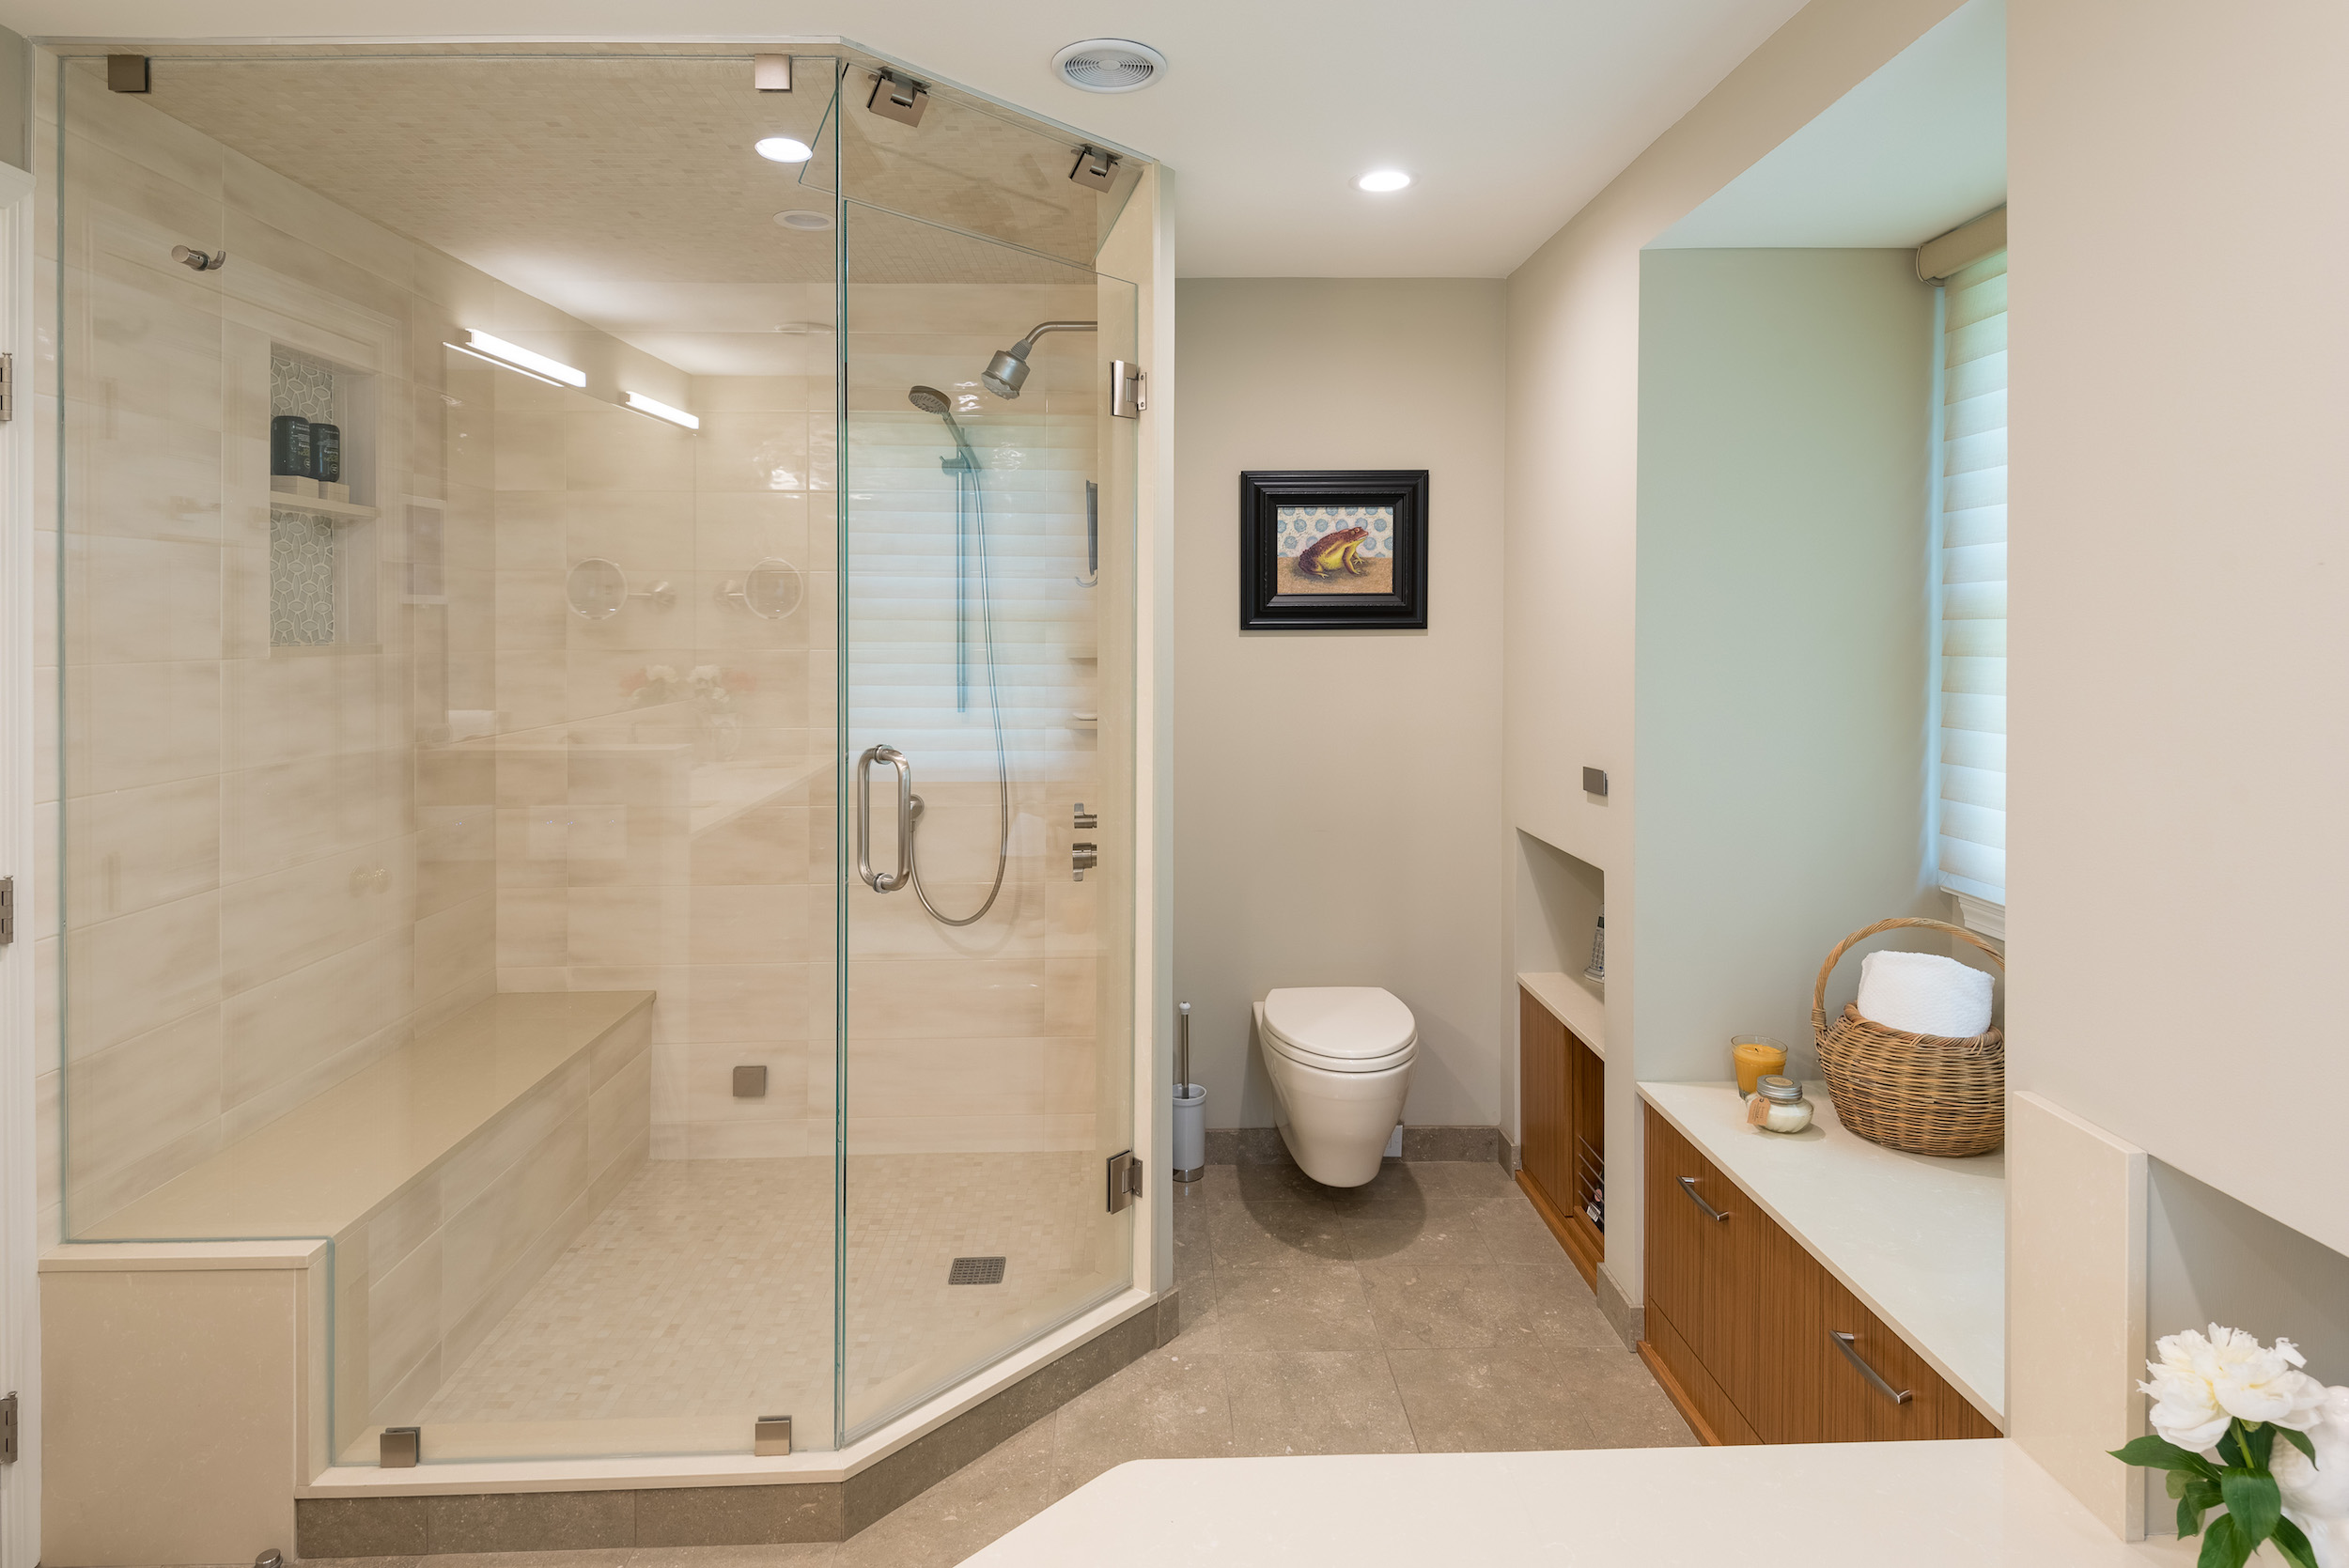 3-KitchenVisions-Master-Baths-Lincoln-1.jpg